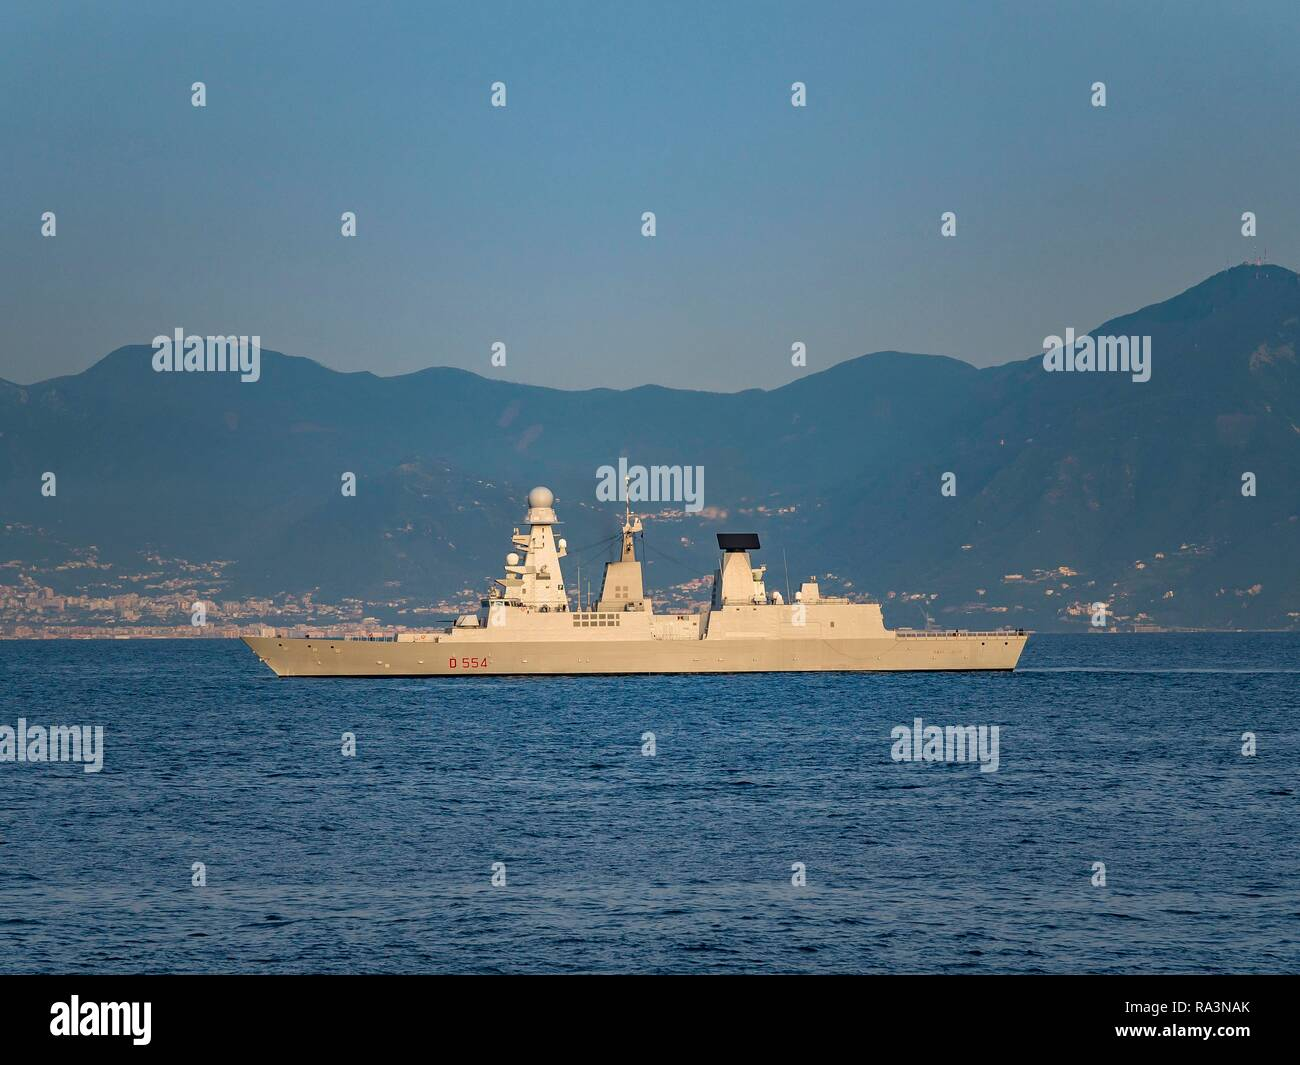 Caio Dullio warship, Horizon class, rocket equipped frigate, escort ship for aircraft carriers in port, Naples, Gulf of Naples - Stock Image